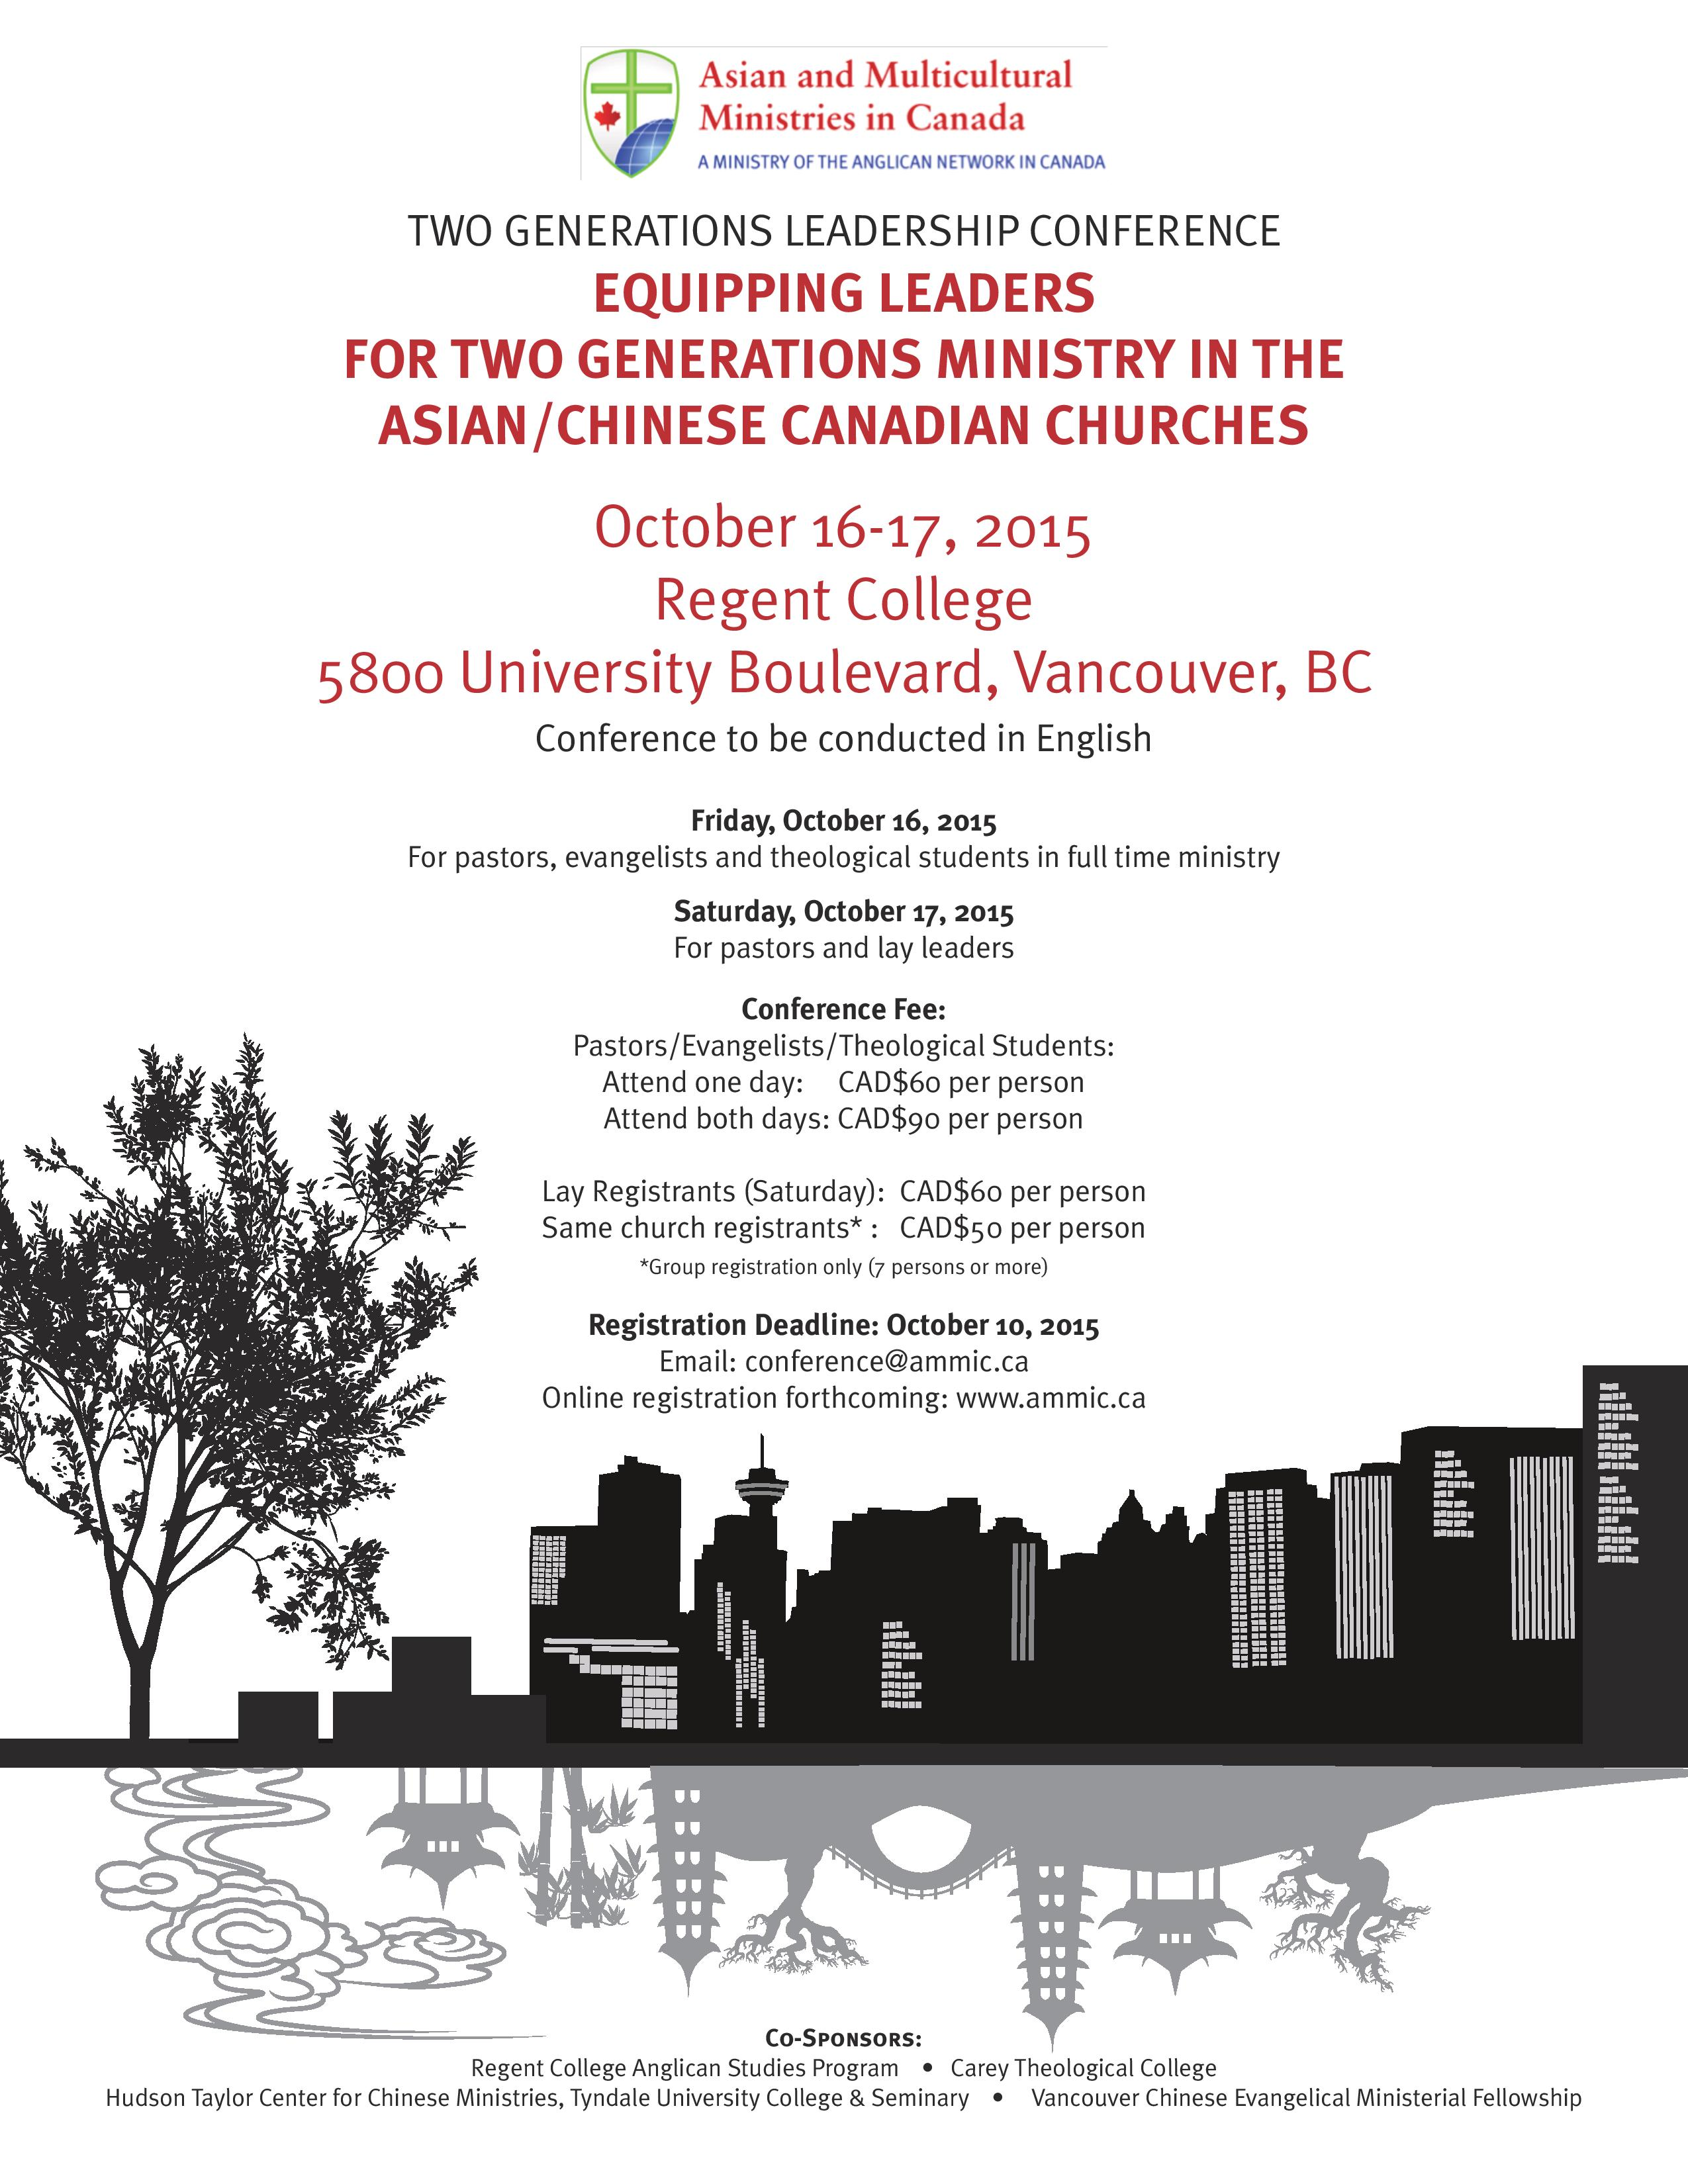 2015 Two Generations Leadership Conference | AMMiC